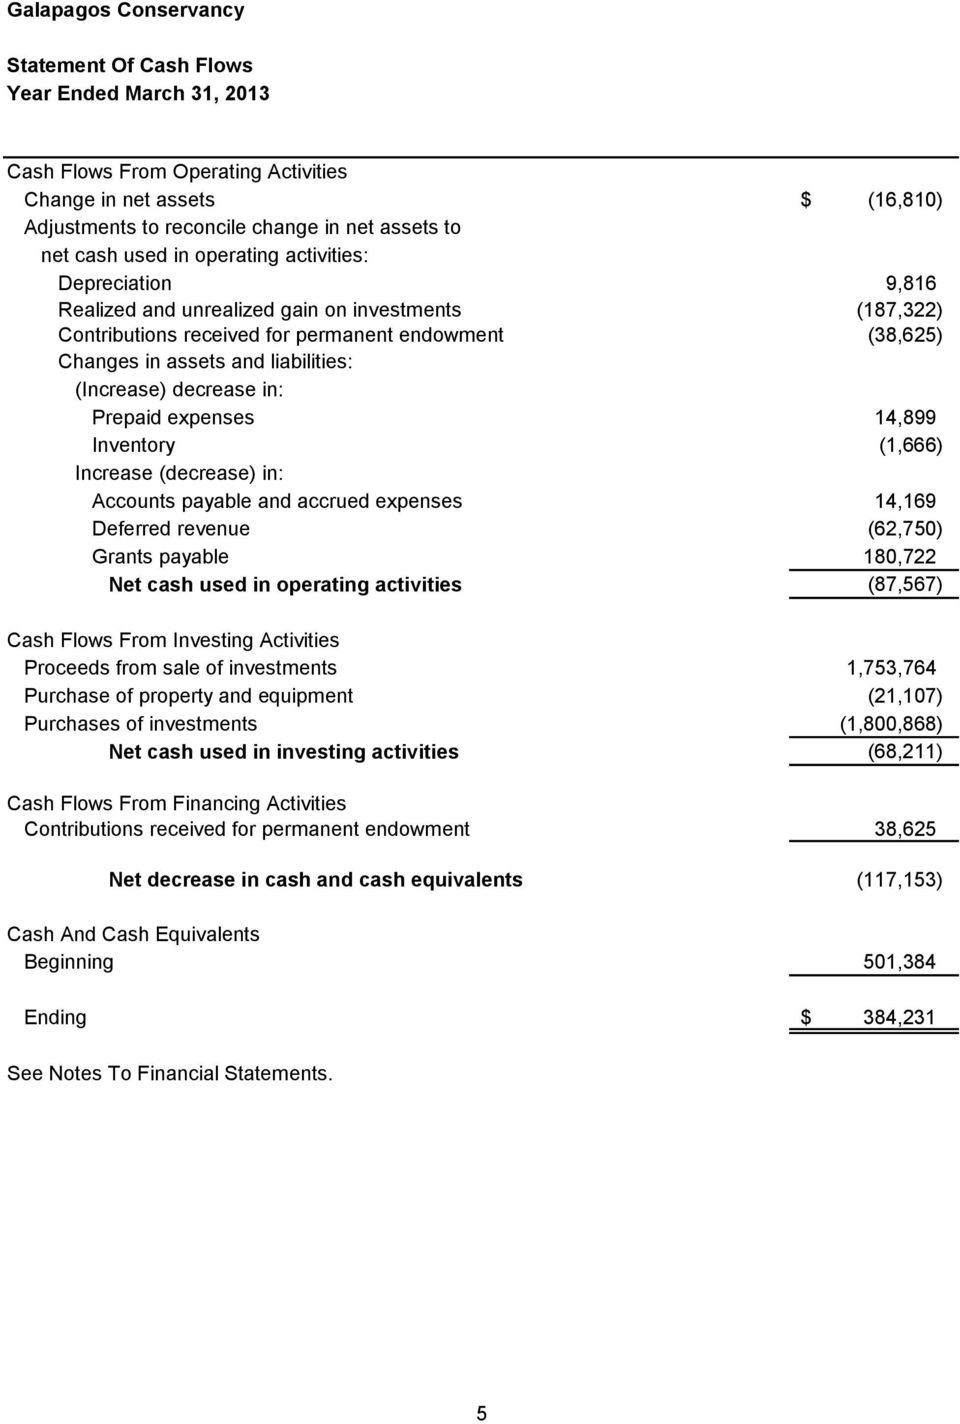 Prepaid expenses 14,899 Inventory (1,666) Increase (decrease) in: Accounts payable and accrued expenses 14,169 Deferred revenue (62,750) Grants payable 180,722 Net cash used in operating activities